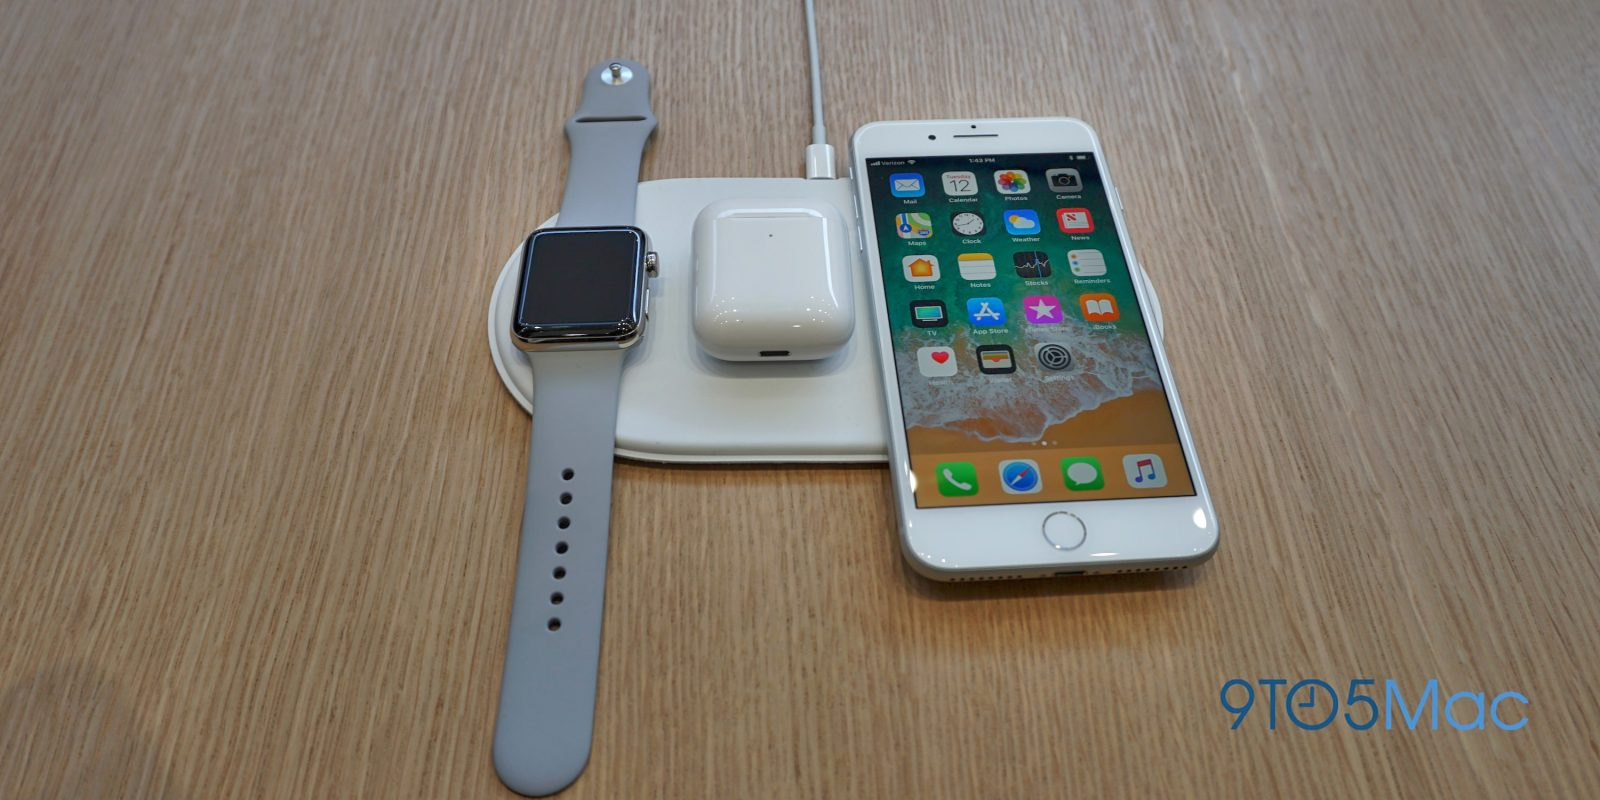 8052d586ad1 Bloomberg: Apple aims to launch AirPower mat by September, runs a 'stripped  down' version of iOS